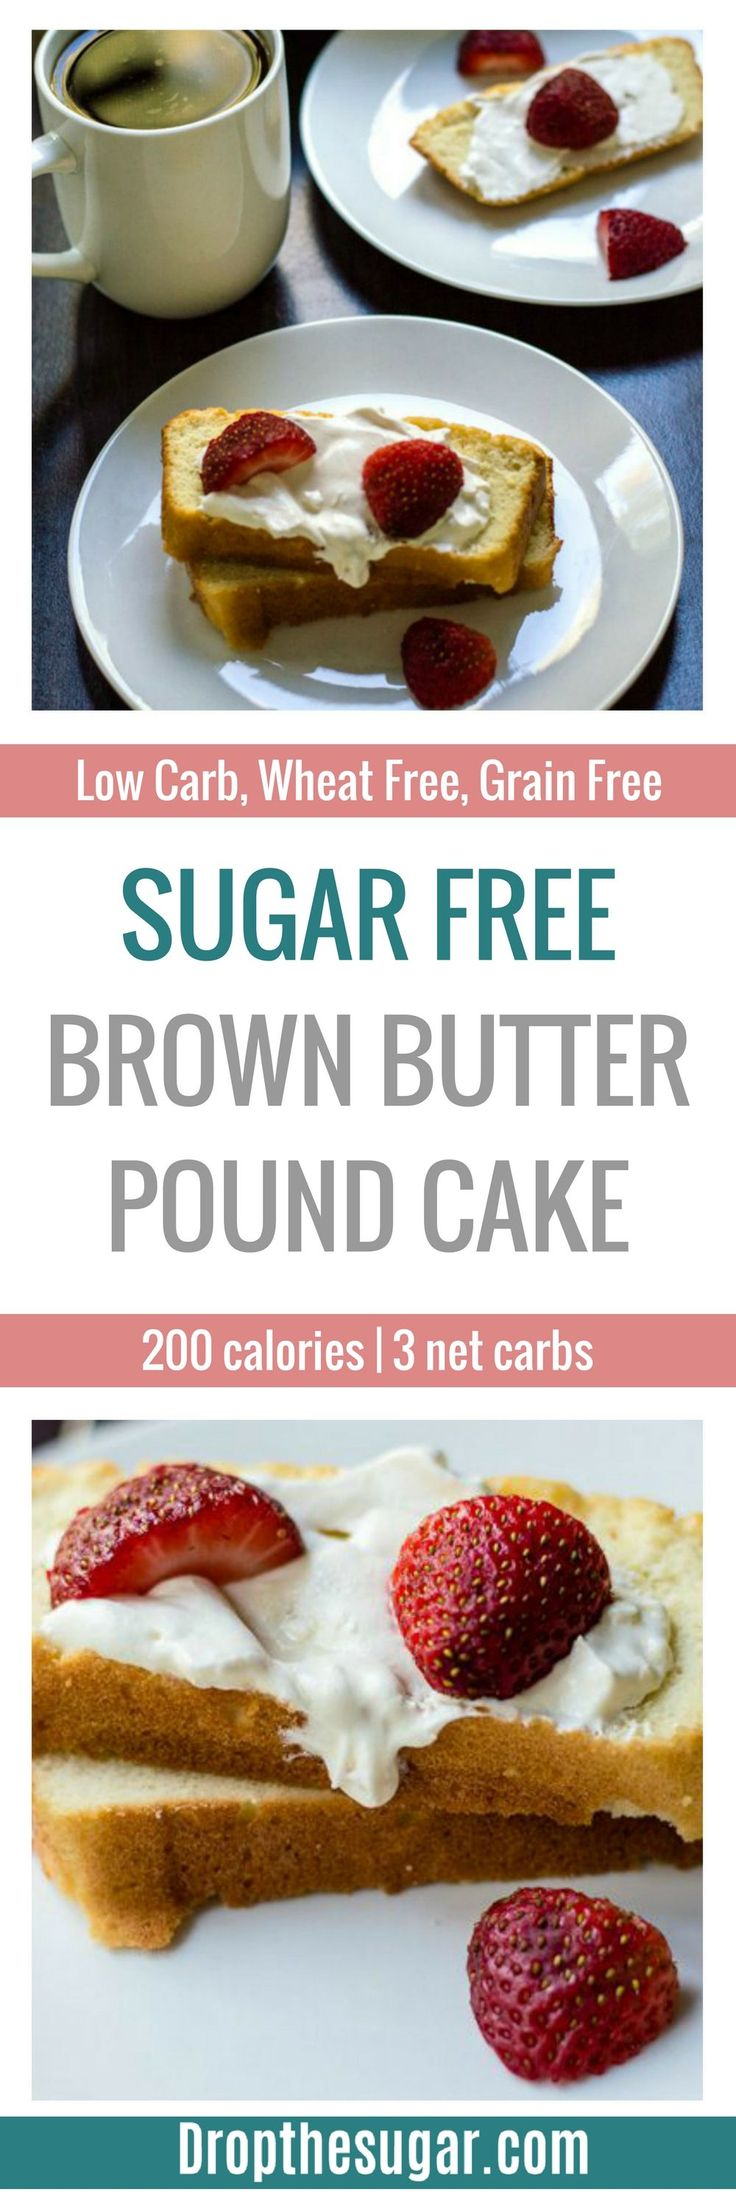 Sugar Free Brown Butter Pound Cake | a low carb pound cake made using coconut flour as the base. This tastes great topped with some heavy cream and strawberries, just like a shortcake. A delicious low carb dessert idea for the upcoming holidays. Pin now to make later!